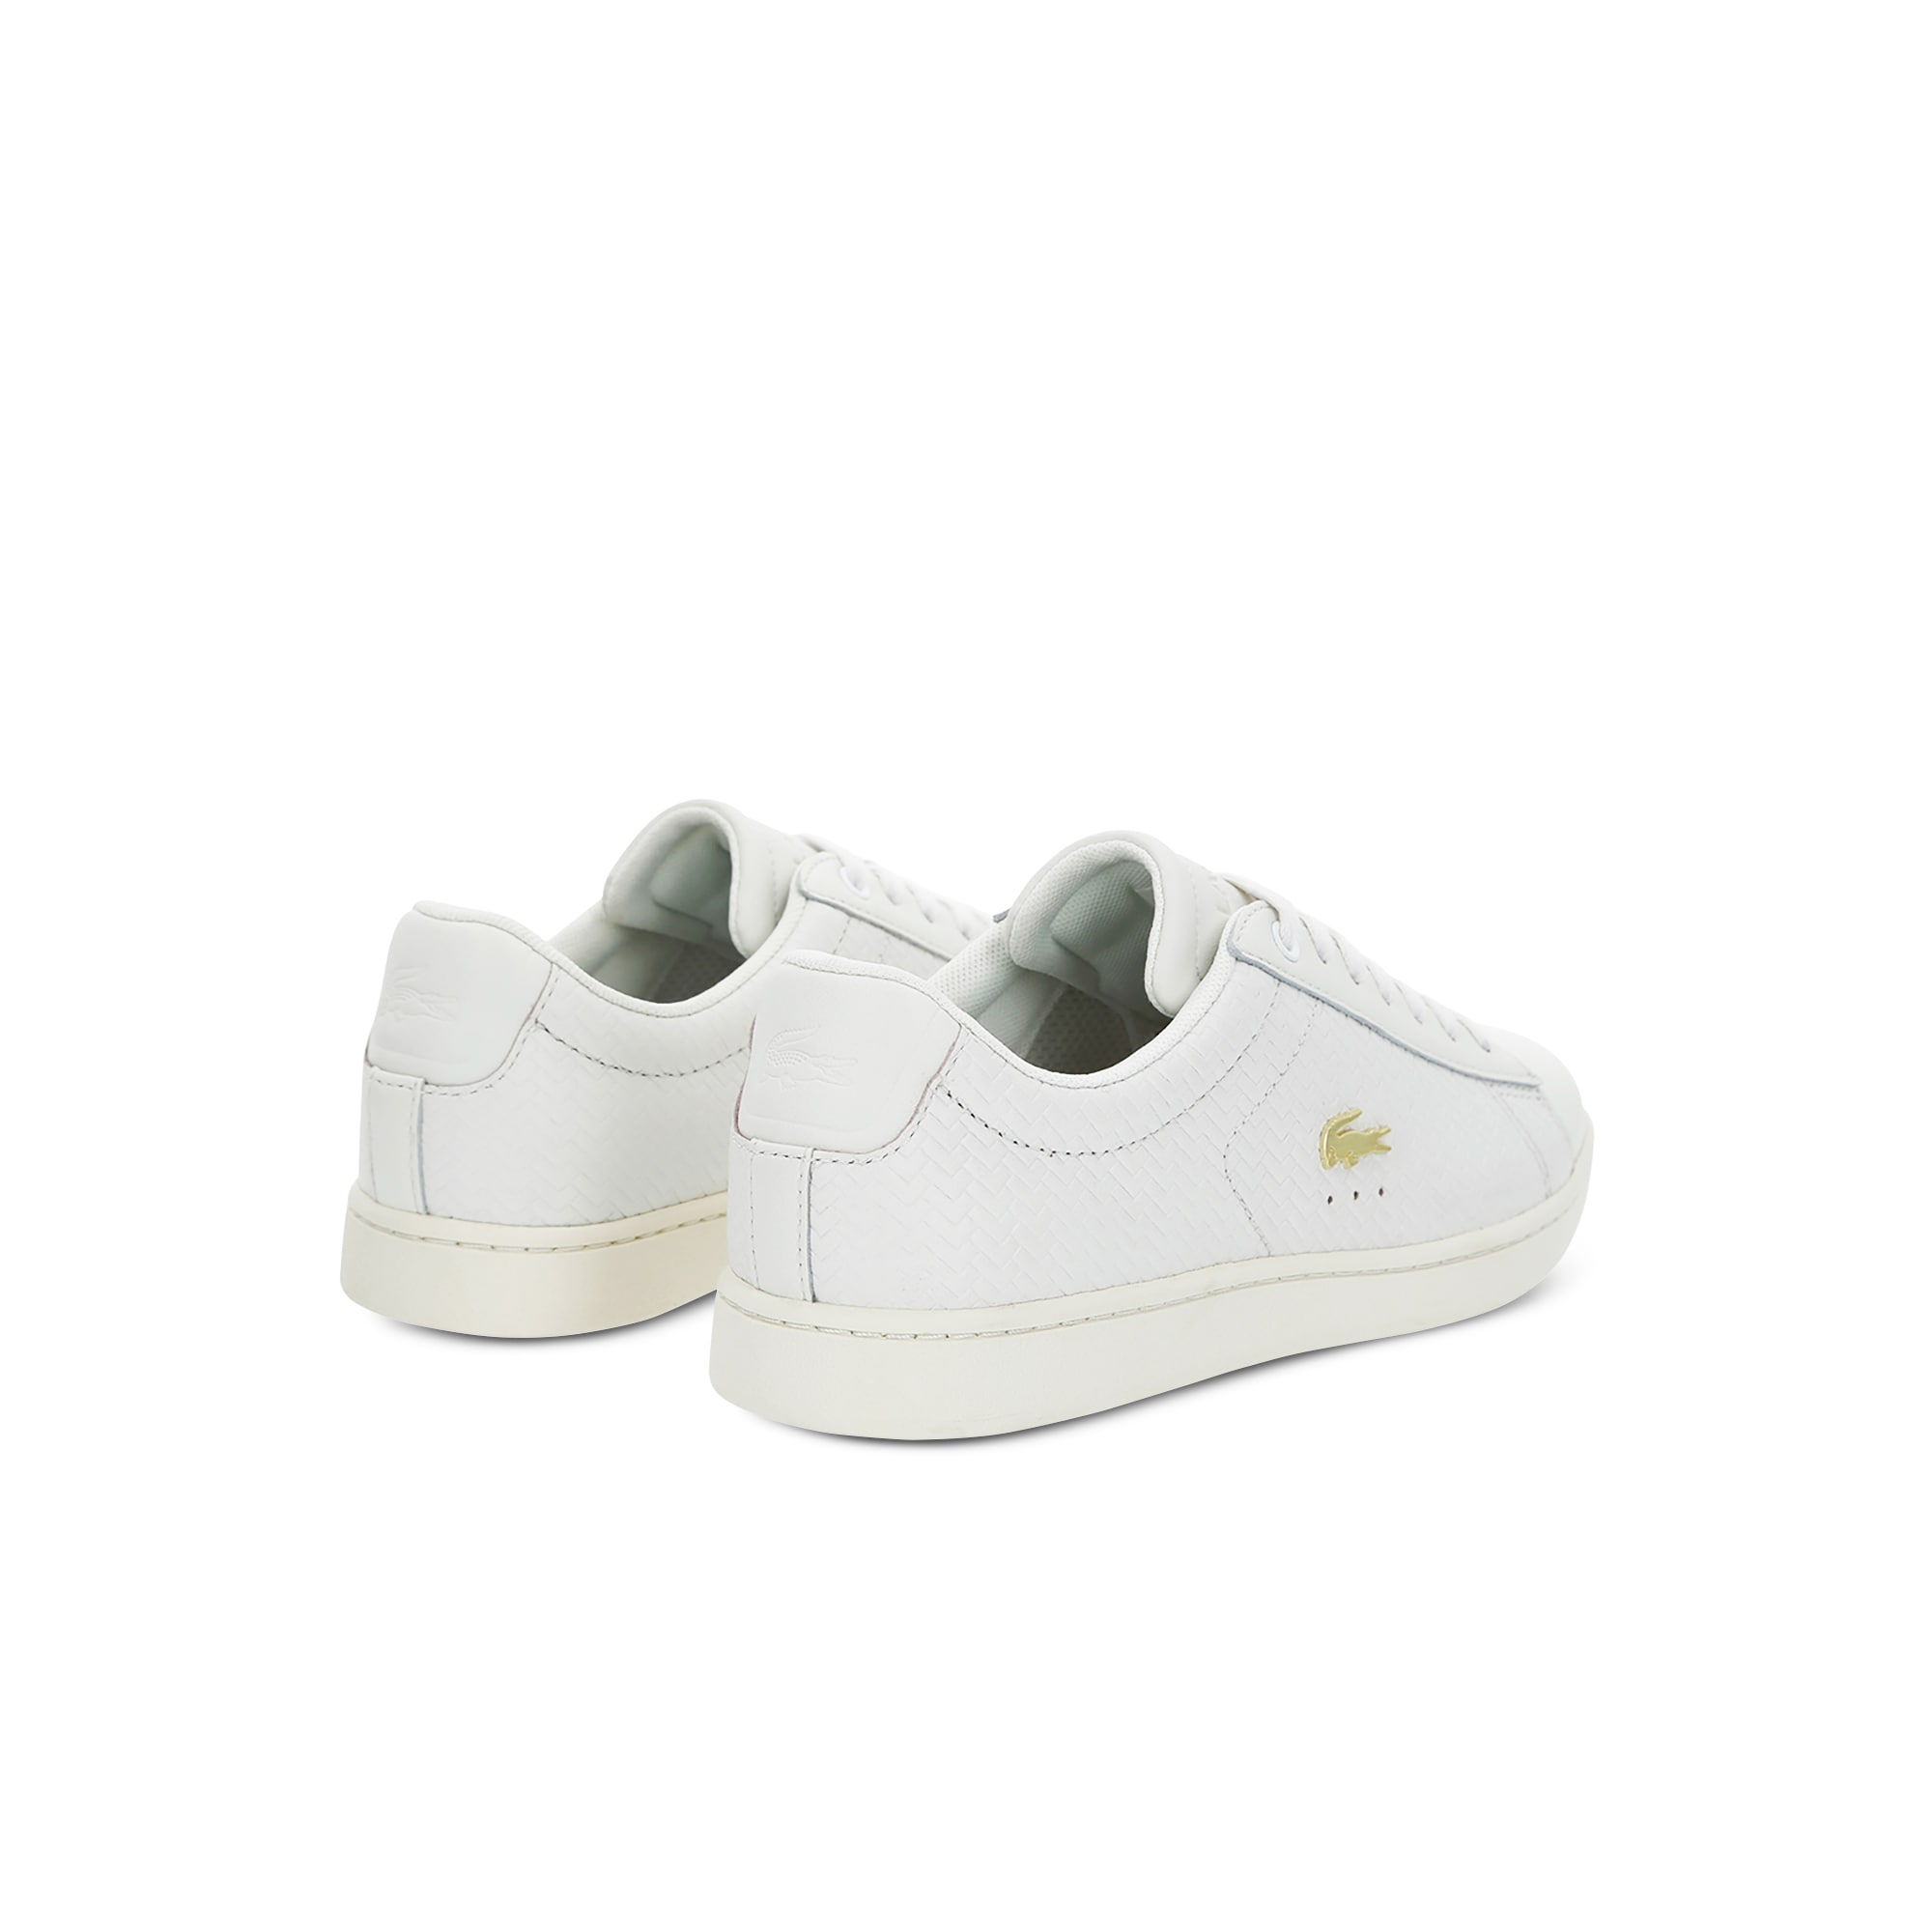 159a527cc44310 Women s Carnaby Evo Textured Leather Trainers